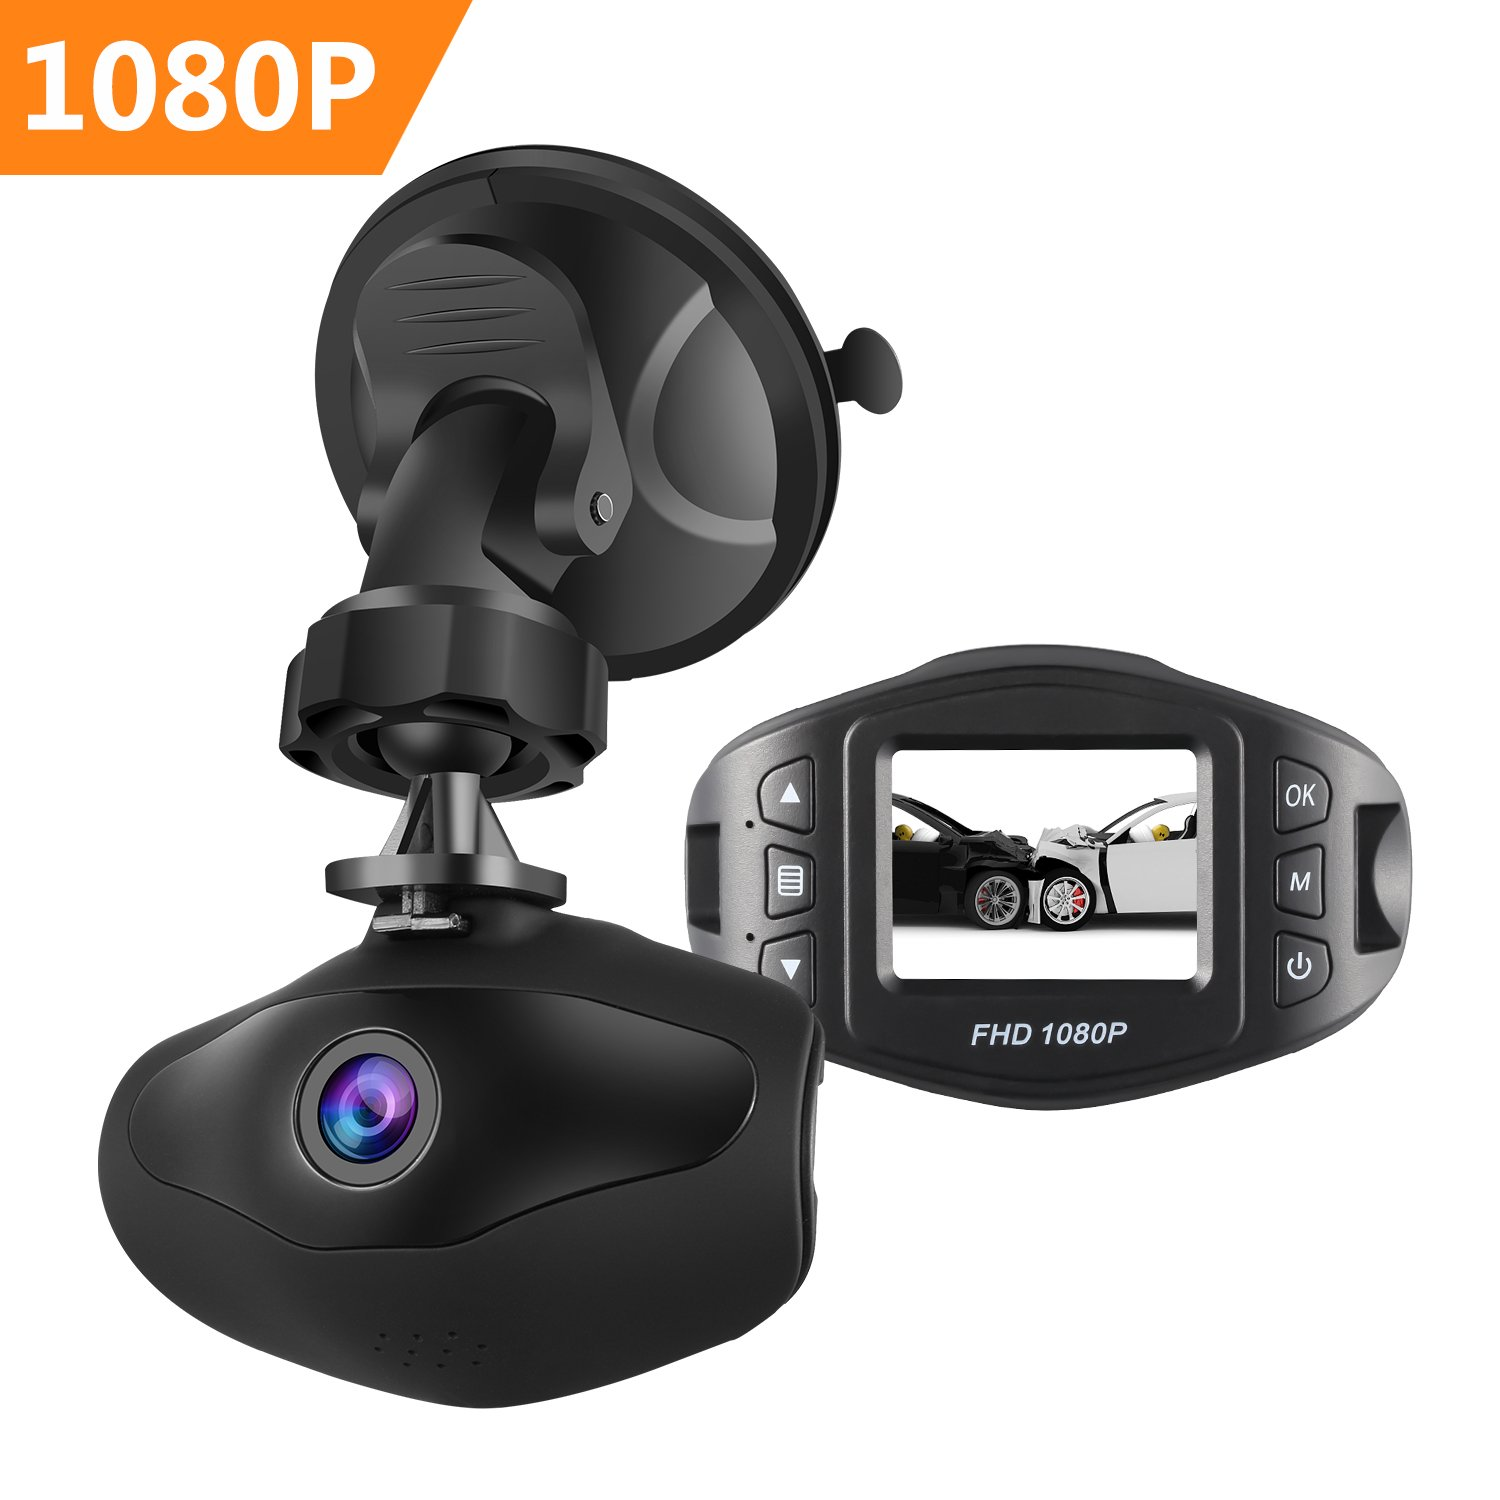 sendow mini dash camera fhd 1080p 6g lens 170 view angle. Black Bedroom Furniture Sets. Home Design Ideas